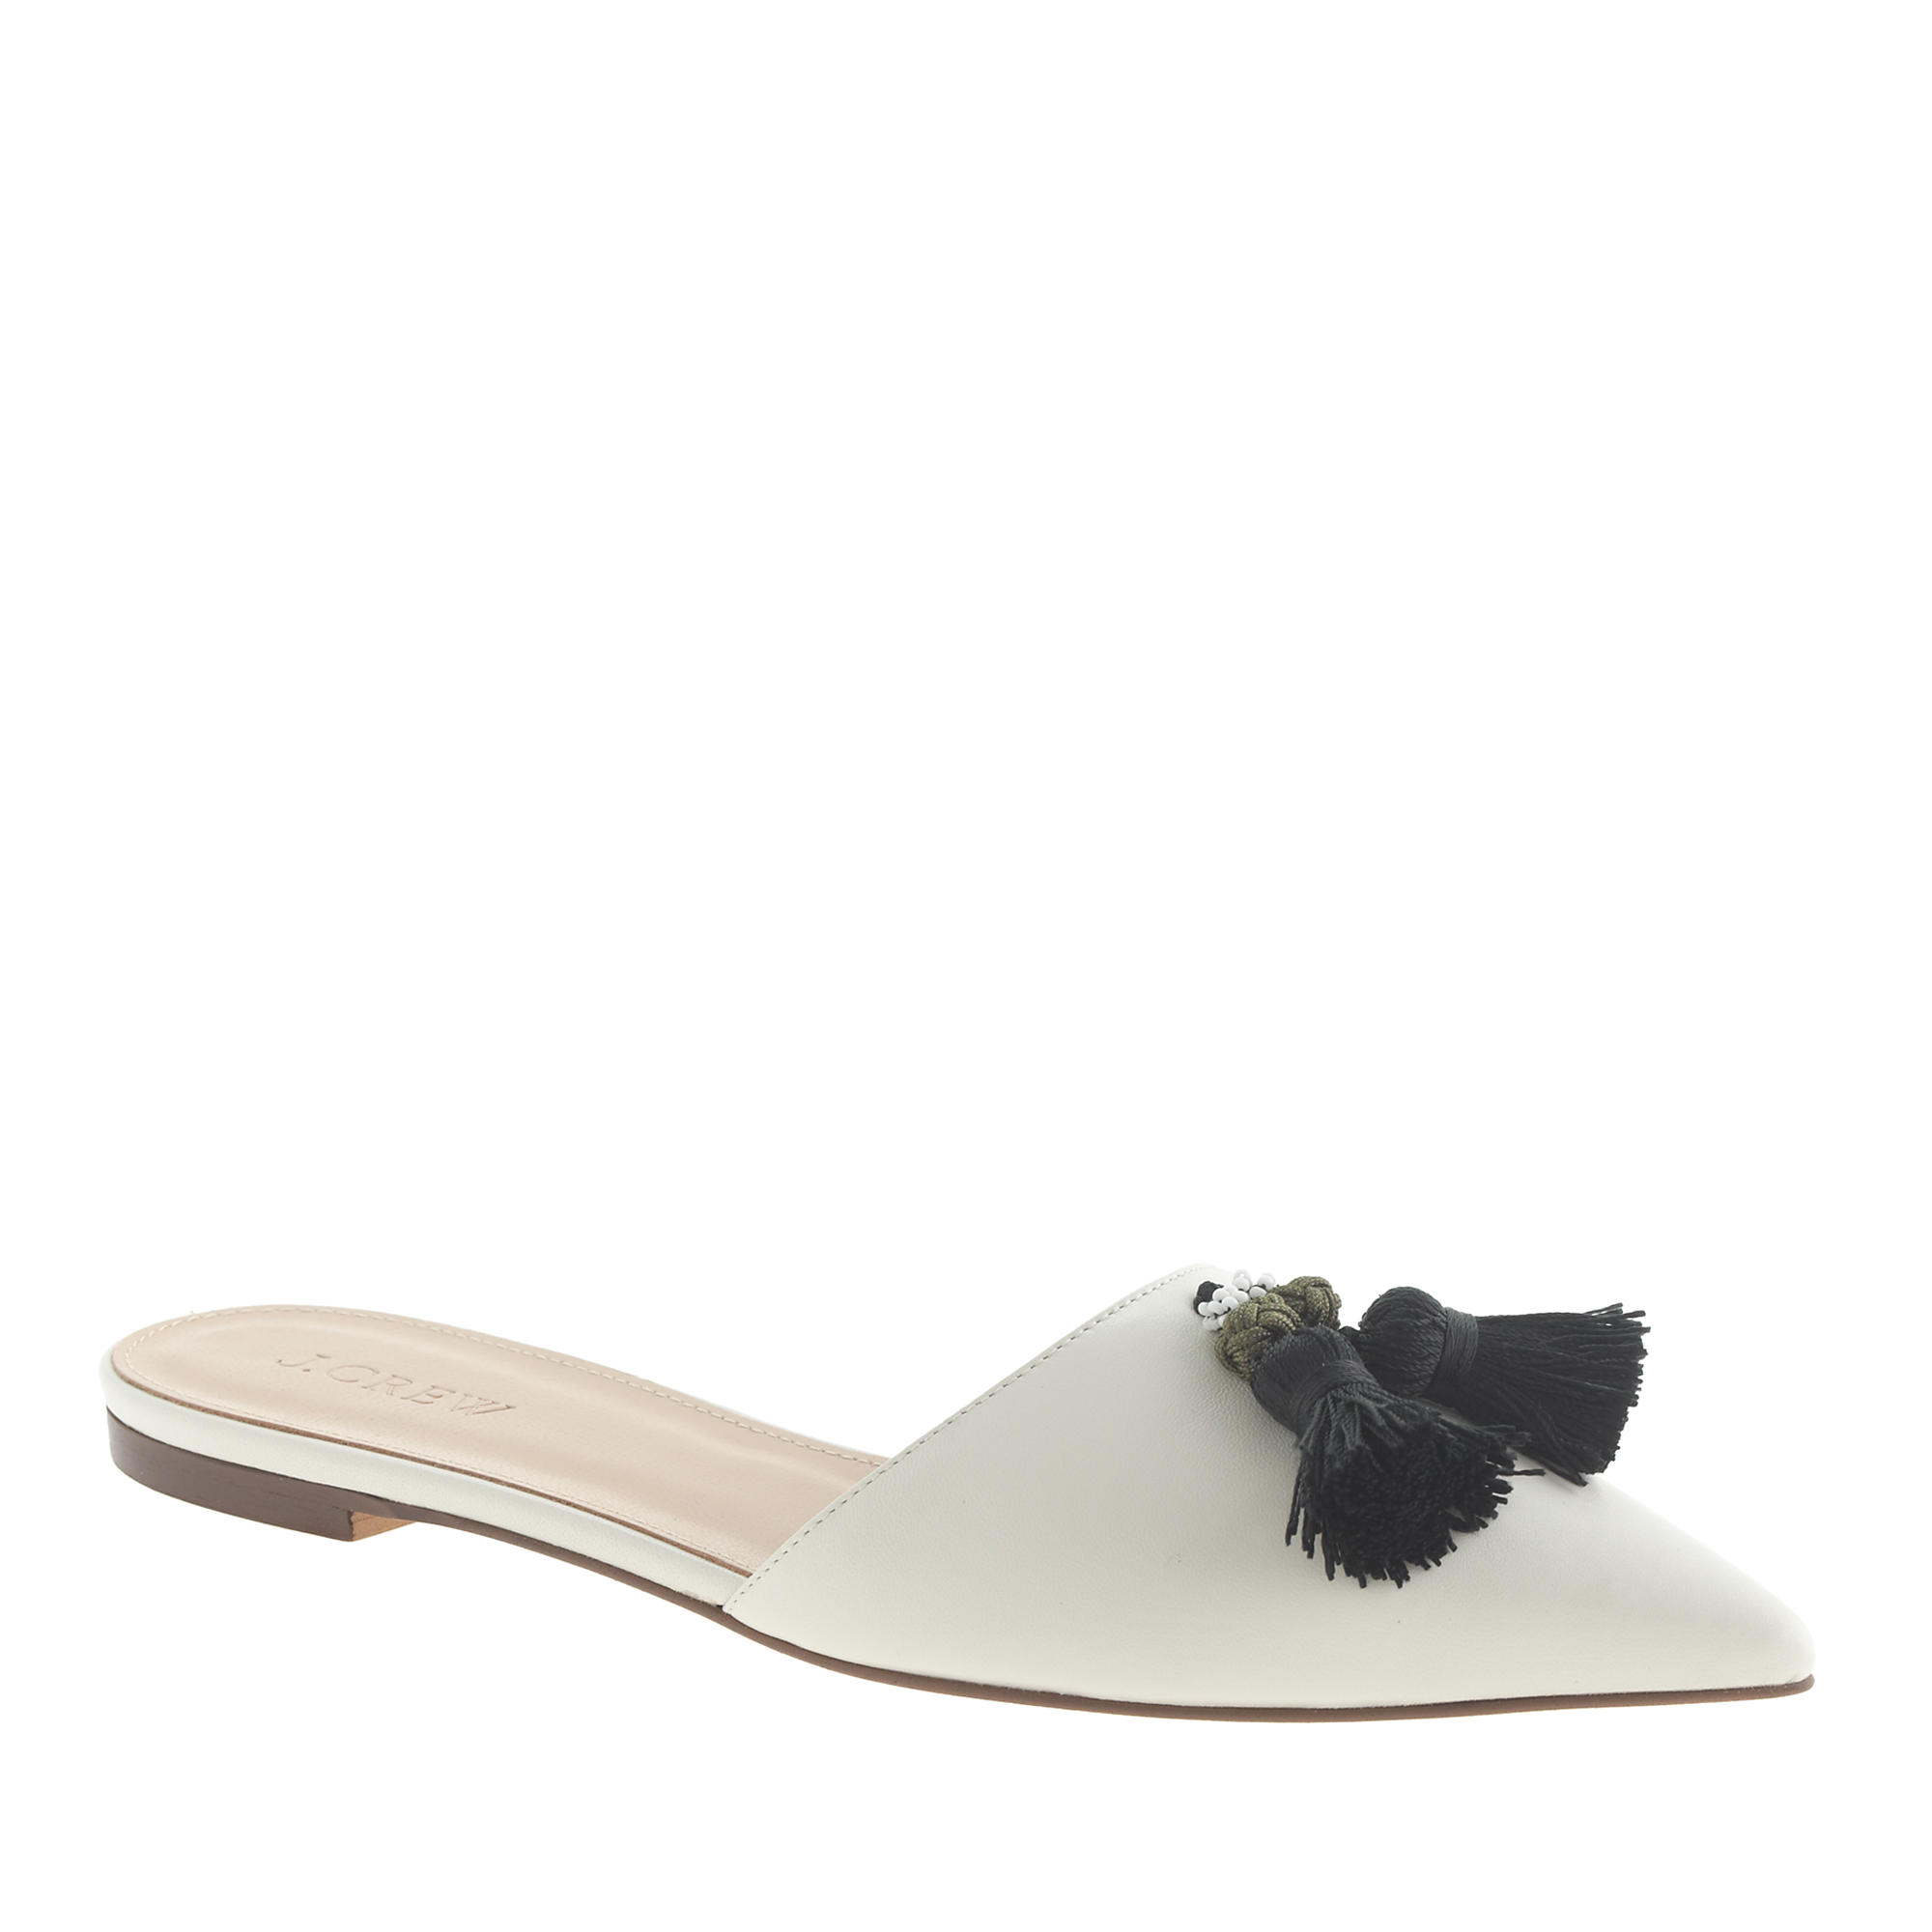 Harper leather tassel mules j crew for J crew bedroom slippers